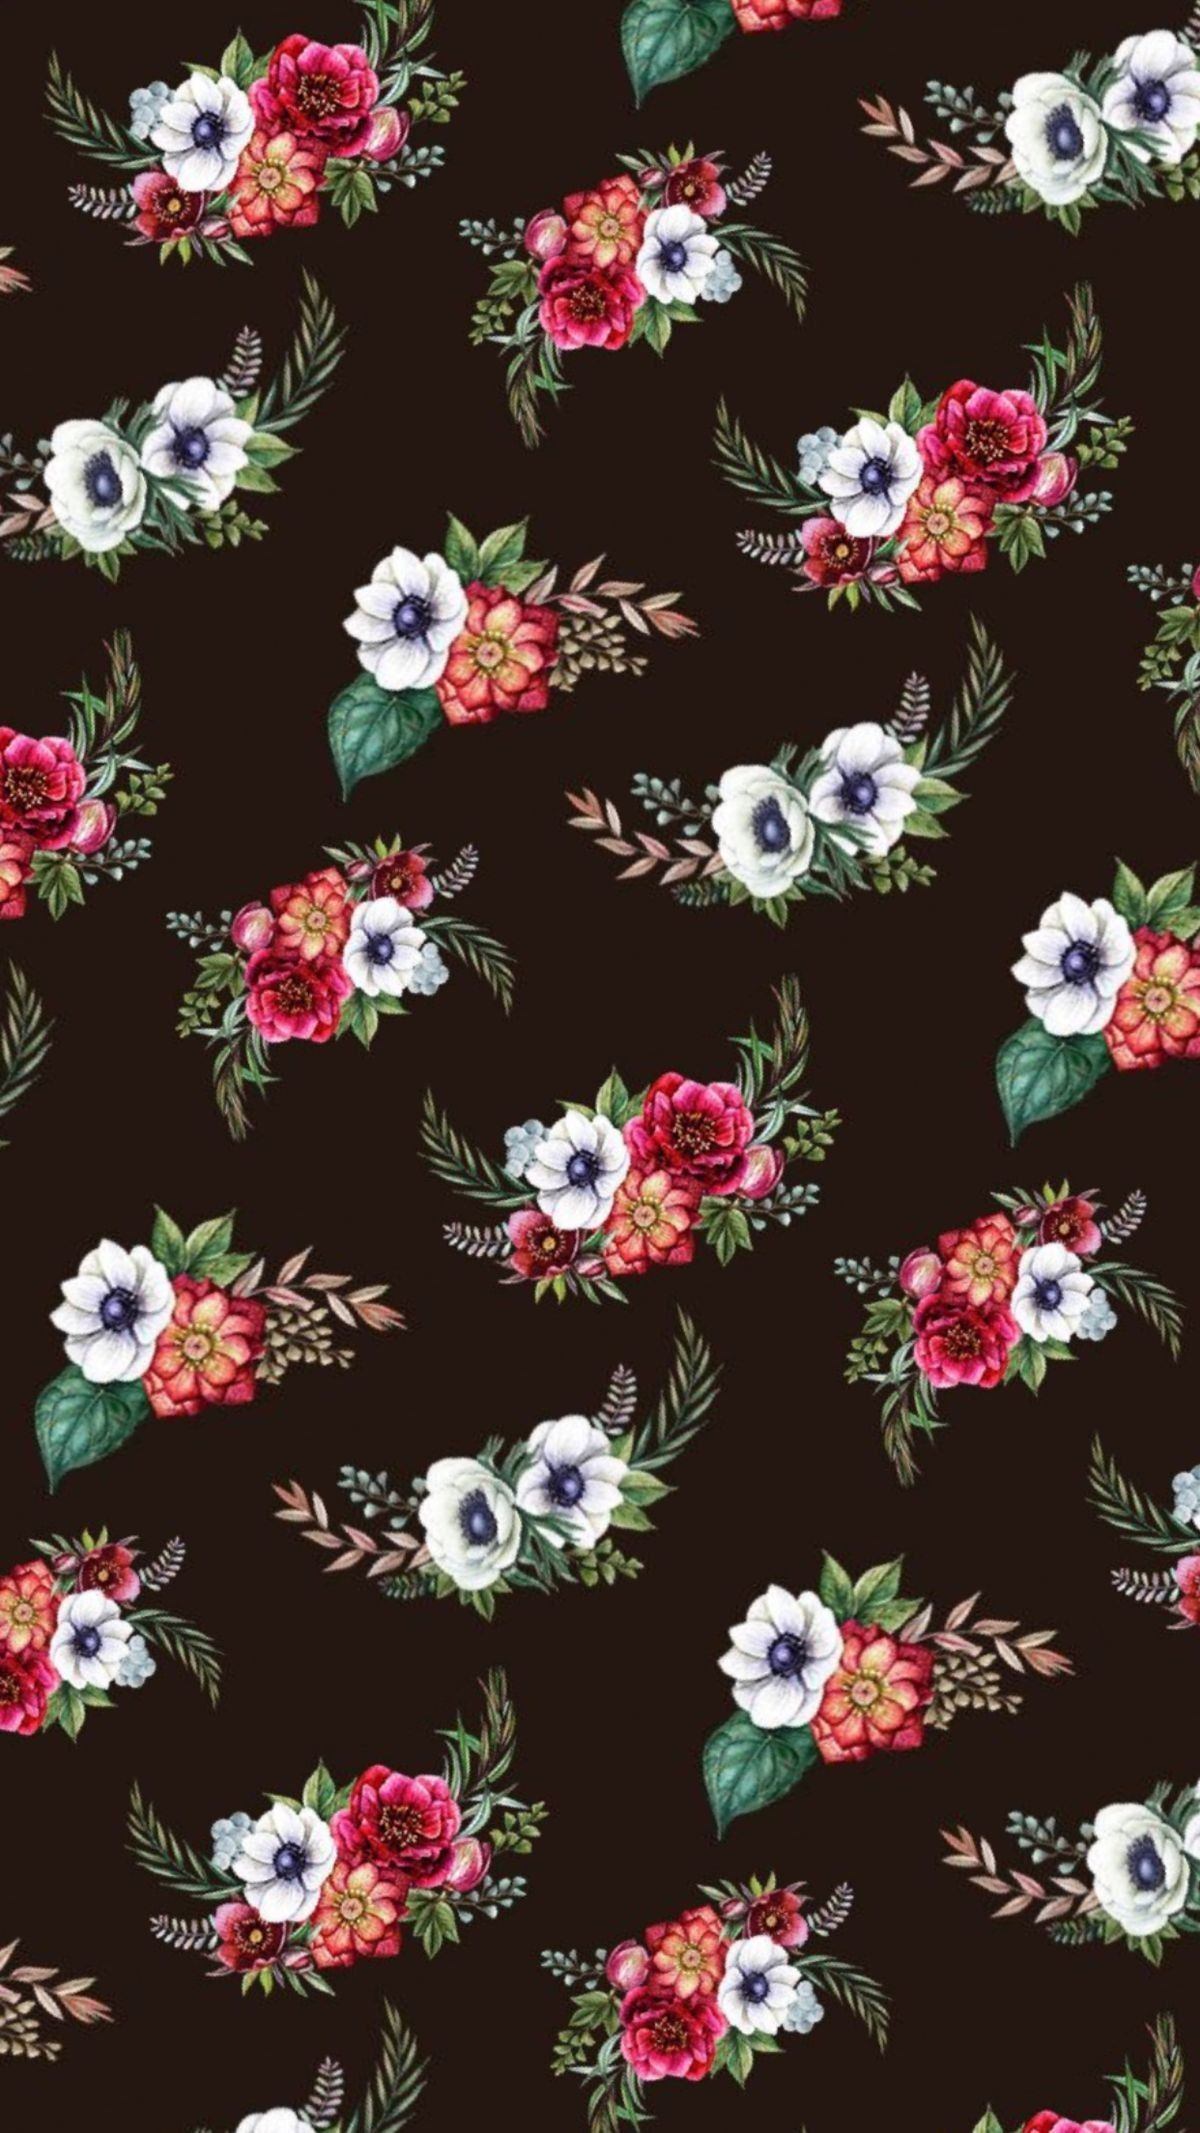 Pin By Tew Witty On Florzinha 2 Vintage Flowers Wallpaper Flower Background Wallpaper Flowery Wallpaper